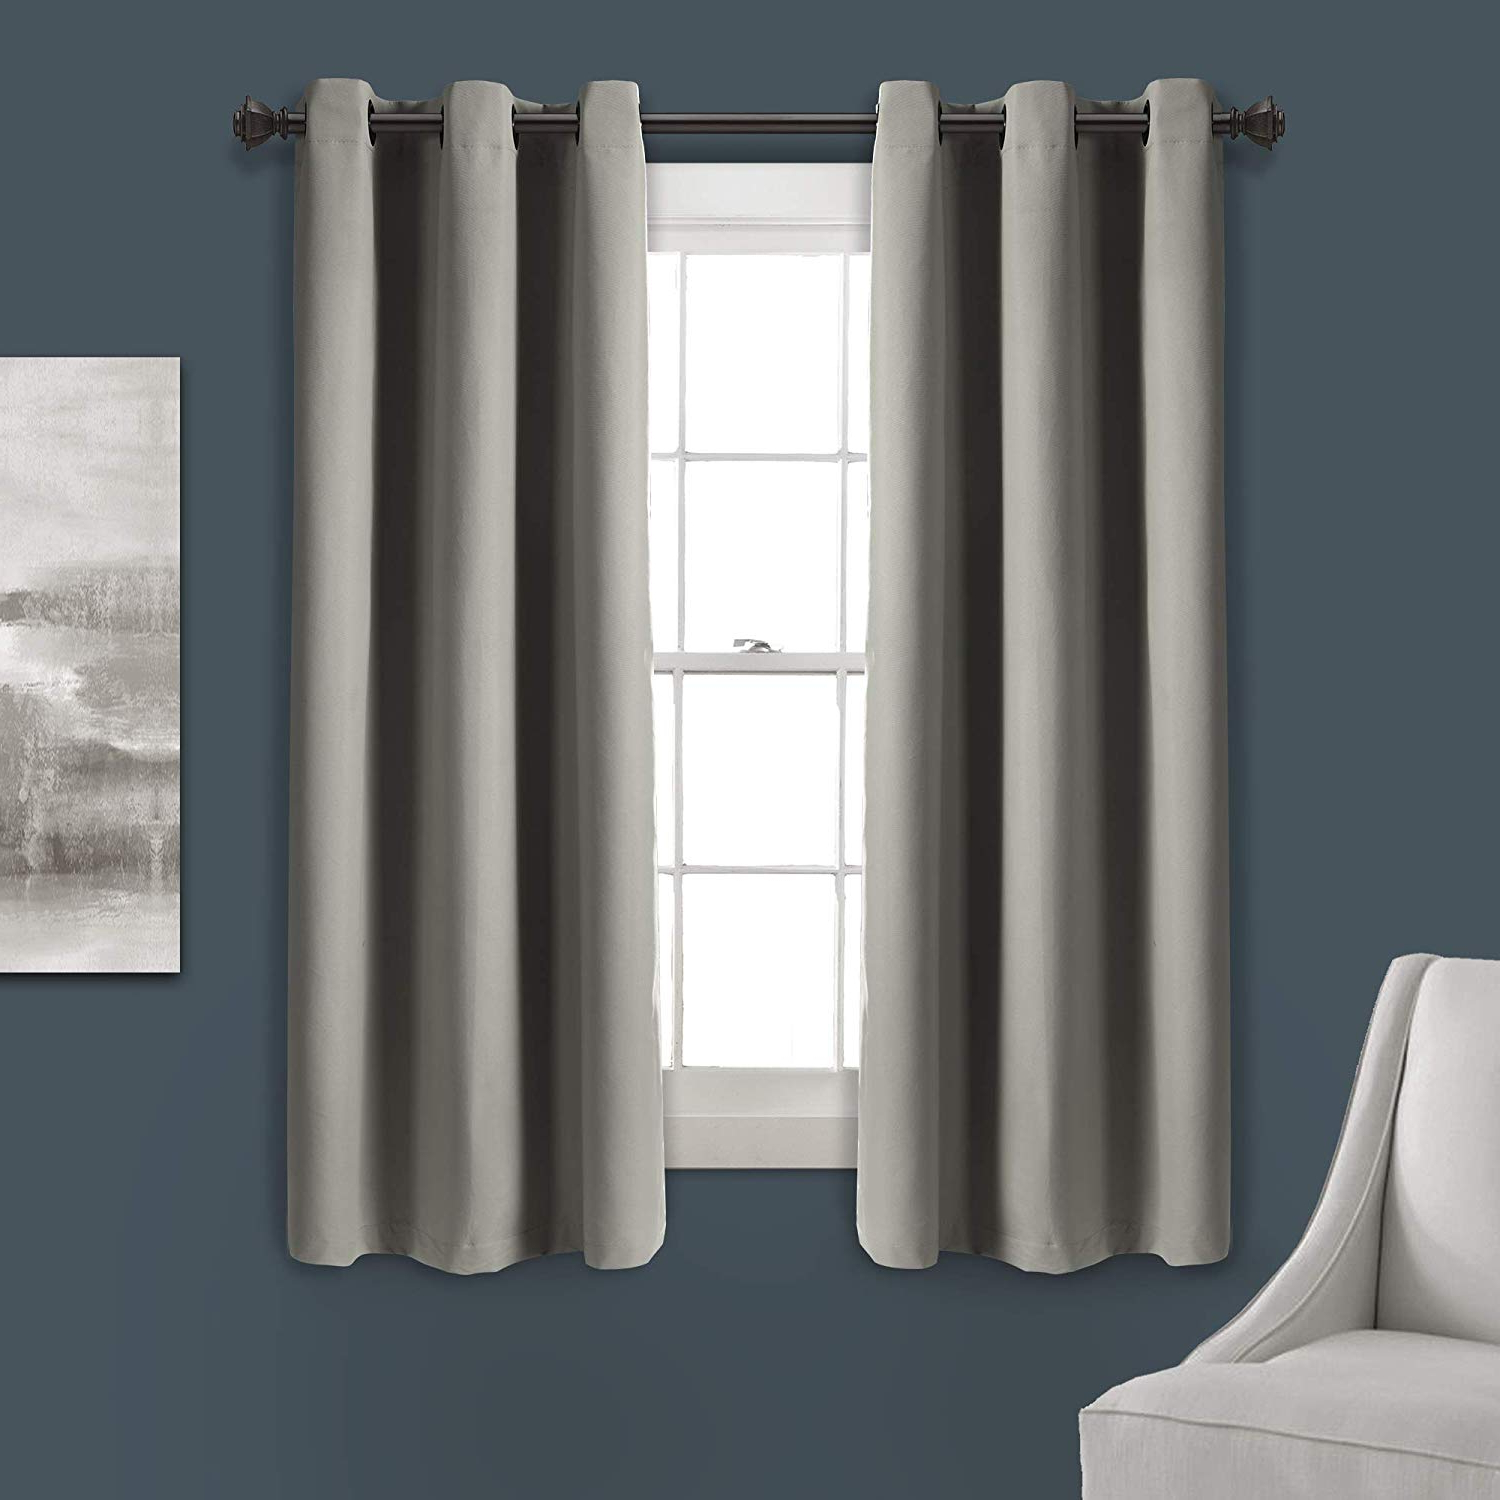 "Room Darkening, Energy Efficient, 63"" X 38"", Throughout Insulated Grommet Blackout Curtain Panel Pairs (View 8 of 20)"